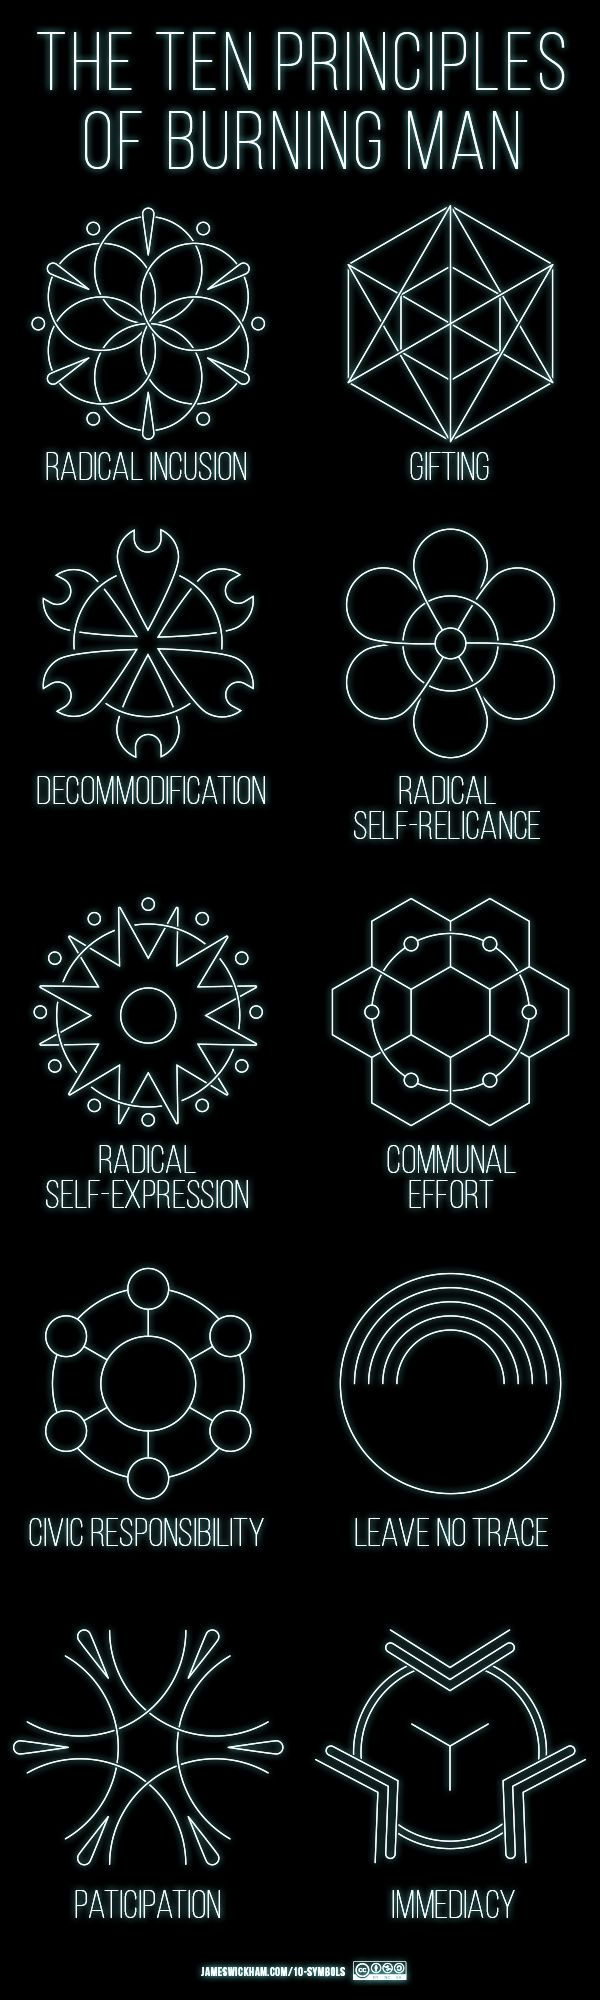 The Ten Principles of Burning Man - as sacred symbols by Wick. #burningman It is easy to be cynical, particularly when an event becomes hugely popular, but that doesn't mean we can't contemplate the core ideas.